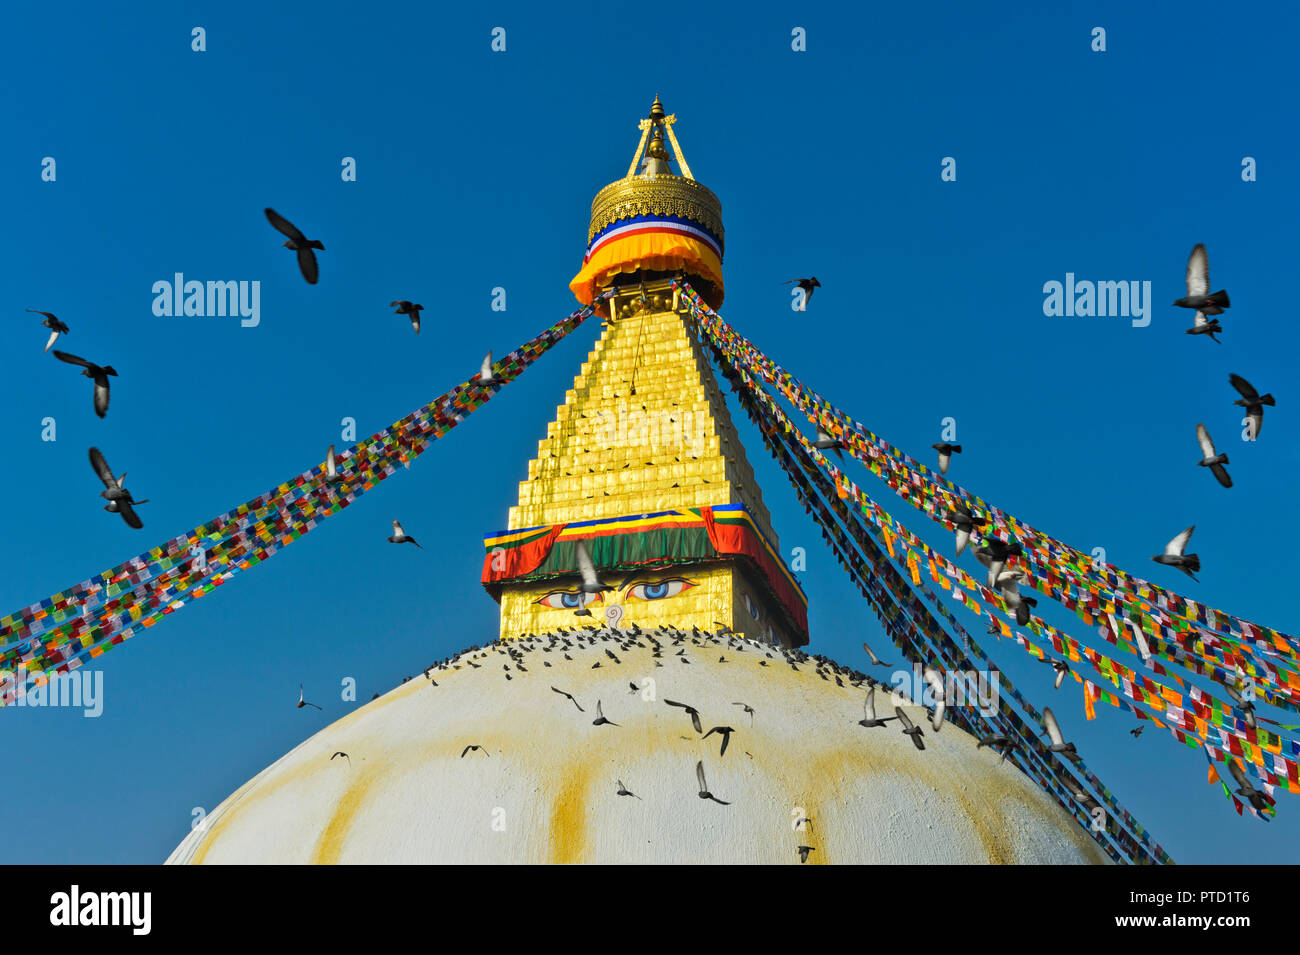 Boudhanath Stupa with a flock of pigeons flying in the sky, Kathmandu, Nepal - Stock Image